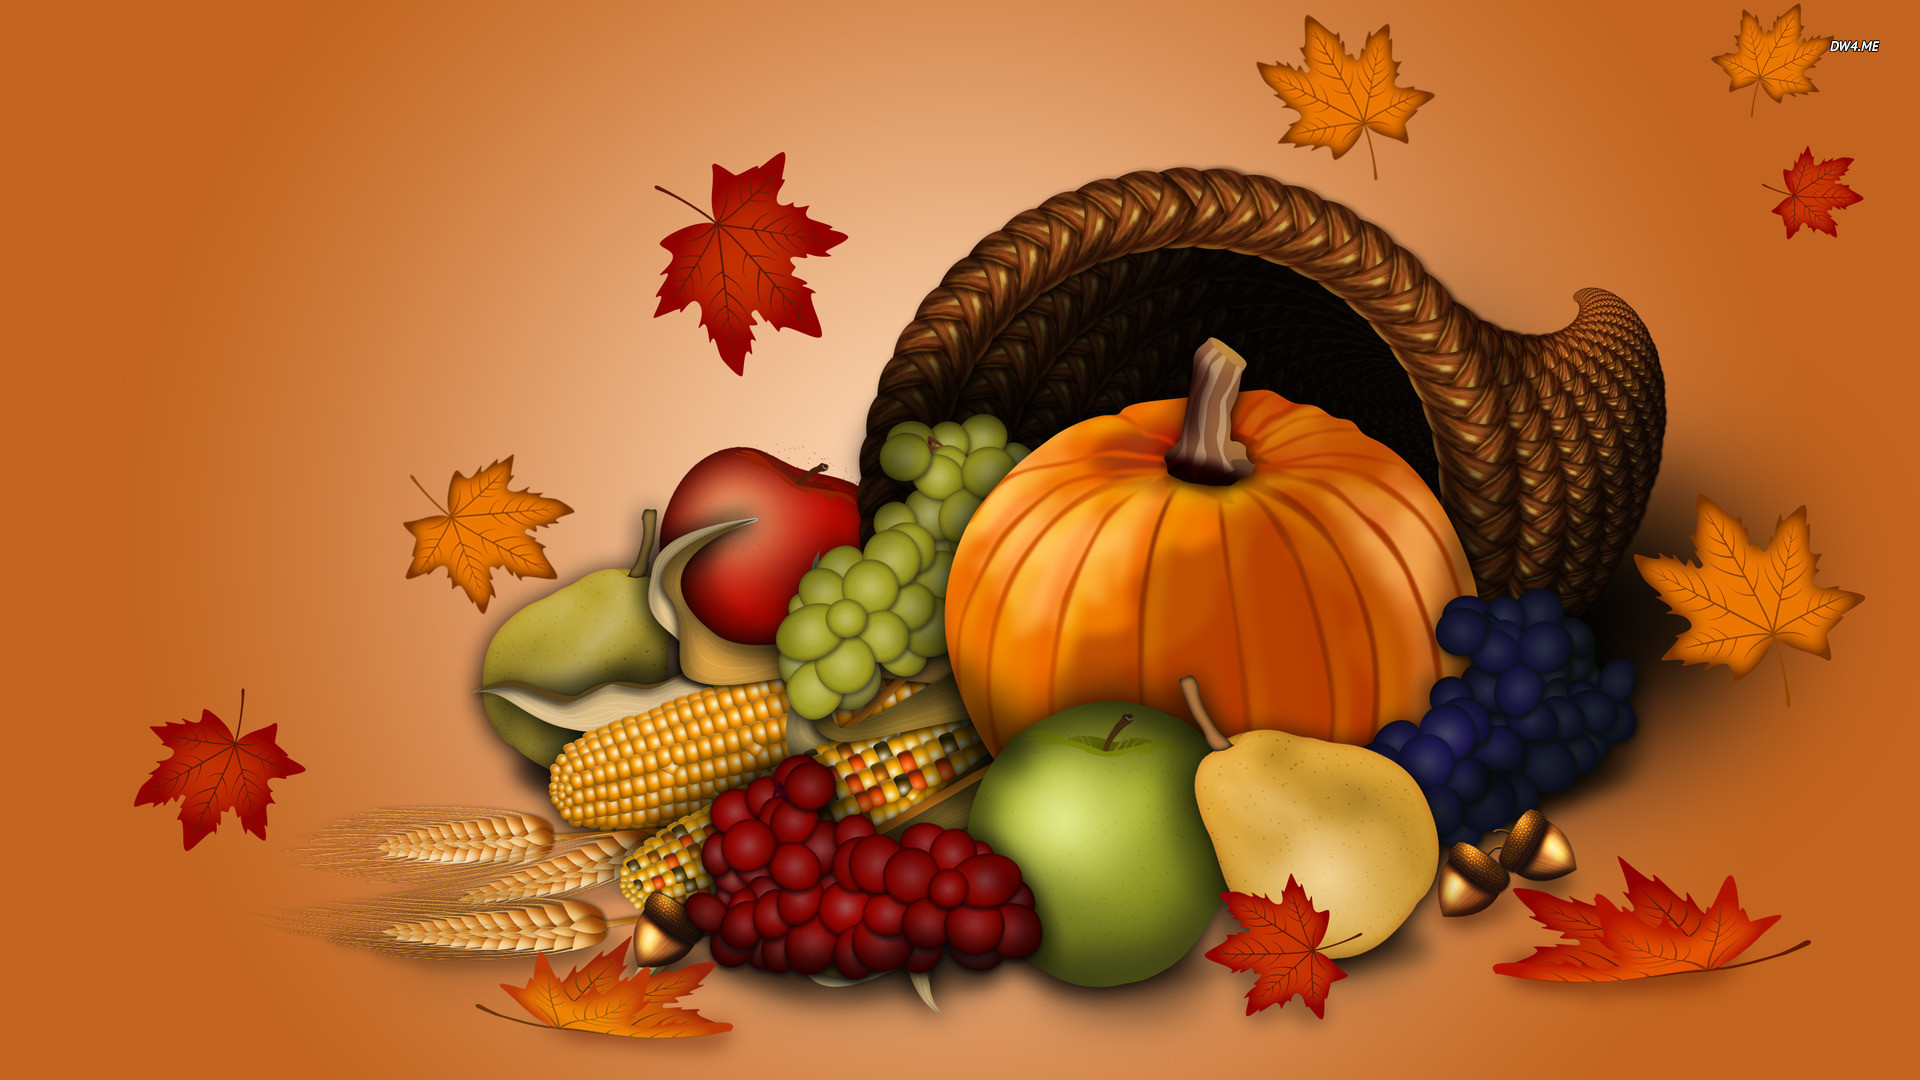 Res: 1920x1080, 3d thanksgiving hd image desktop wallpapers amazing cool colourful  background photos free apple picture 1920×1080 Wallpaper HD